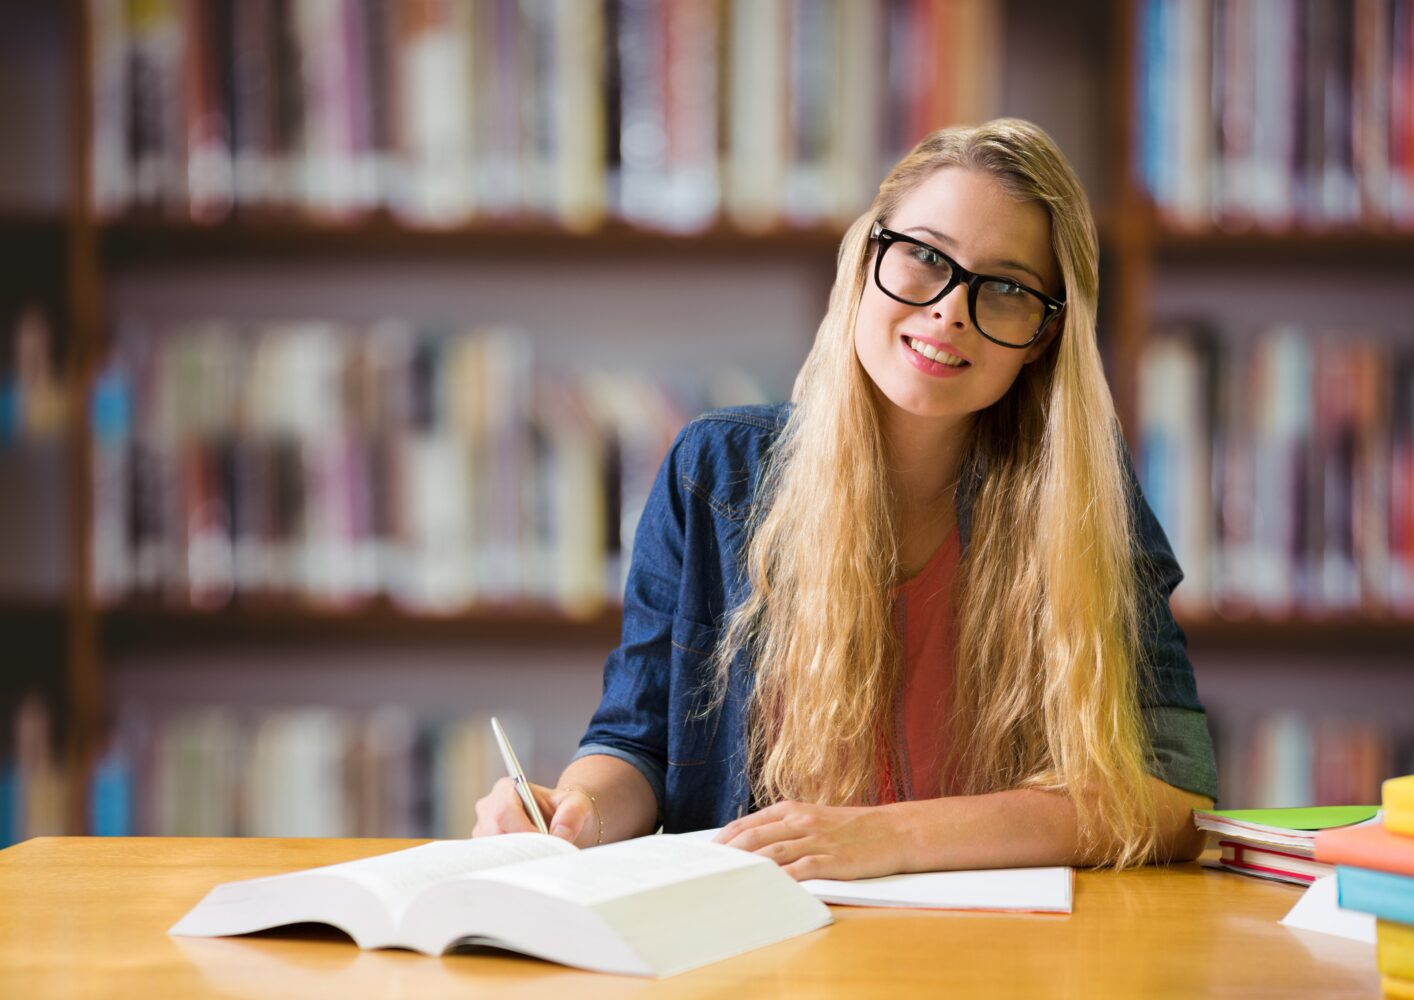 Portrait of girl in spectacles studying in library